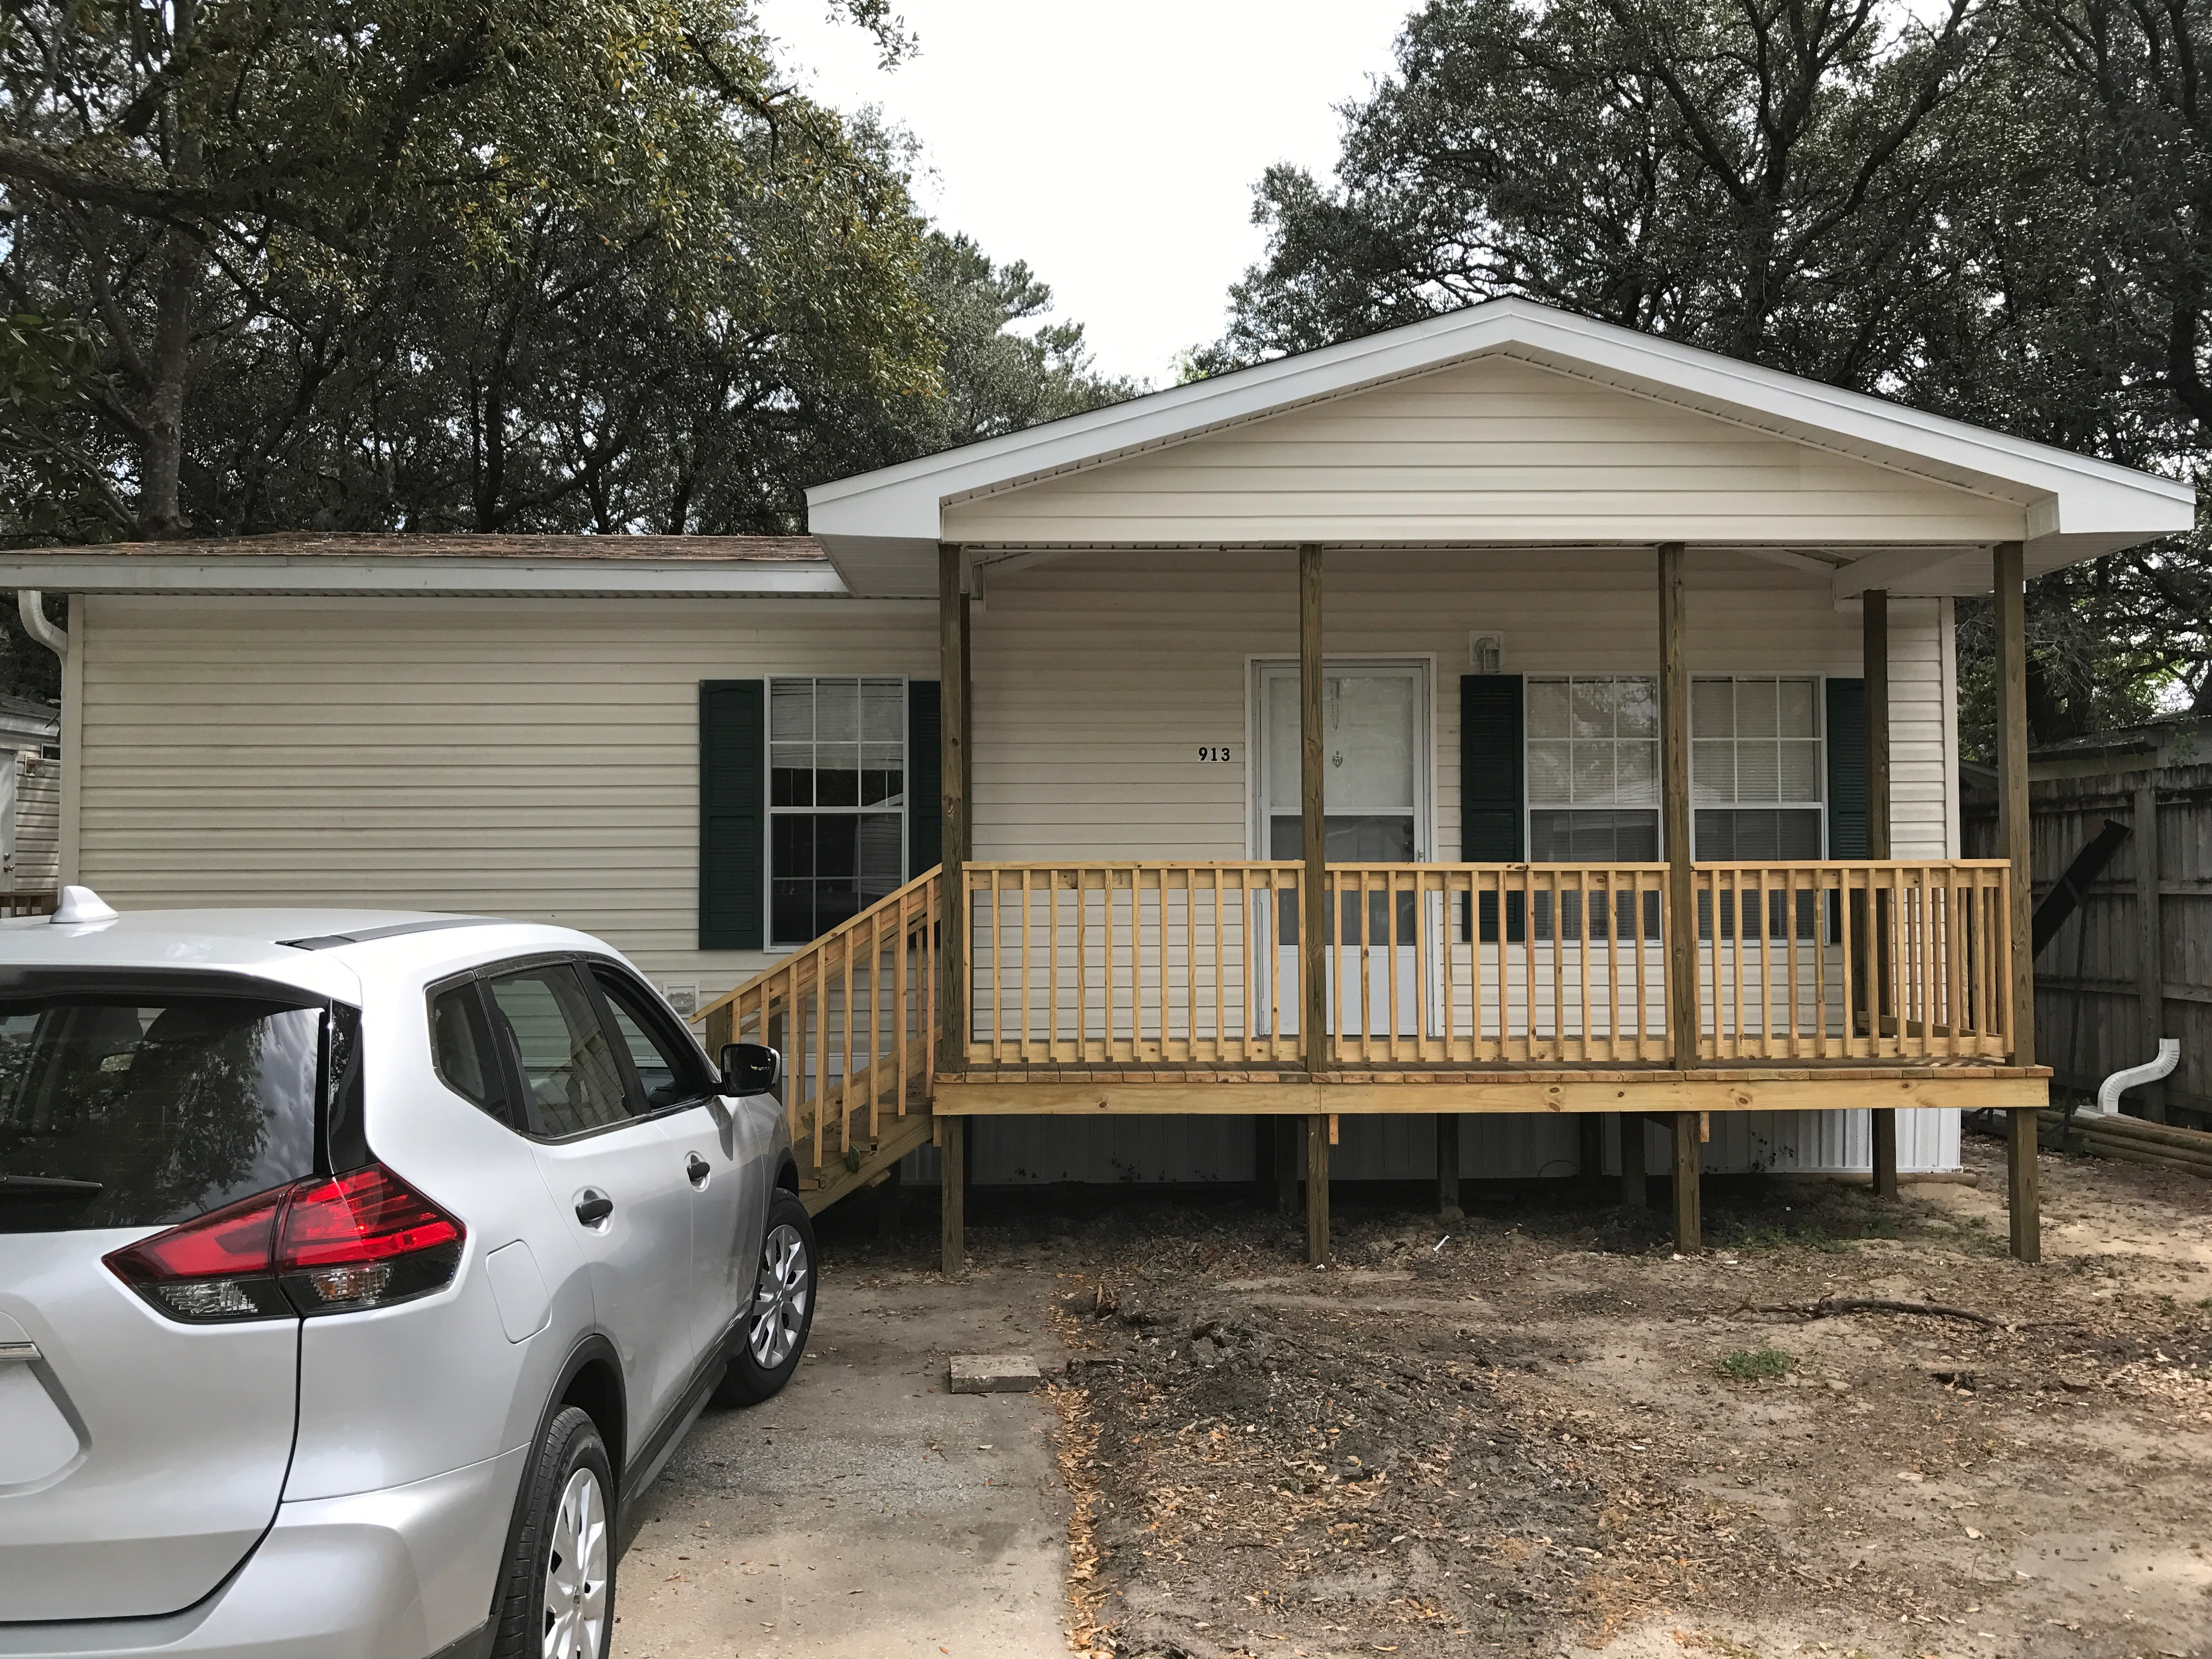 Fort Walton Beach Florida Manufactured Mobile Homes and Lots for